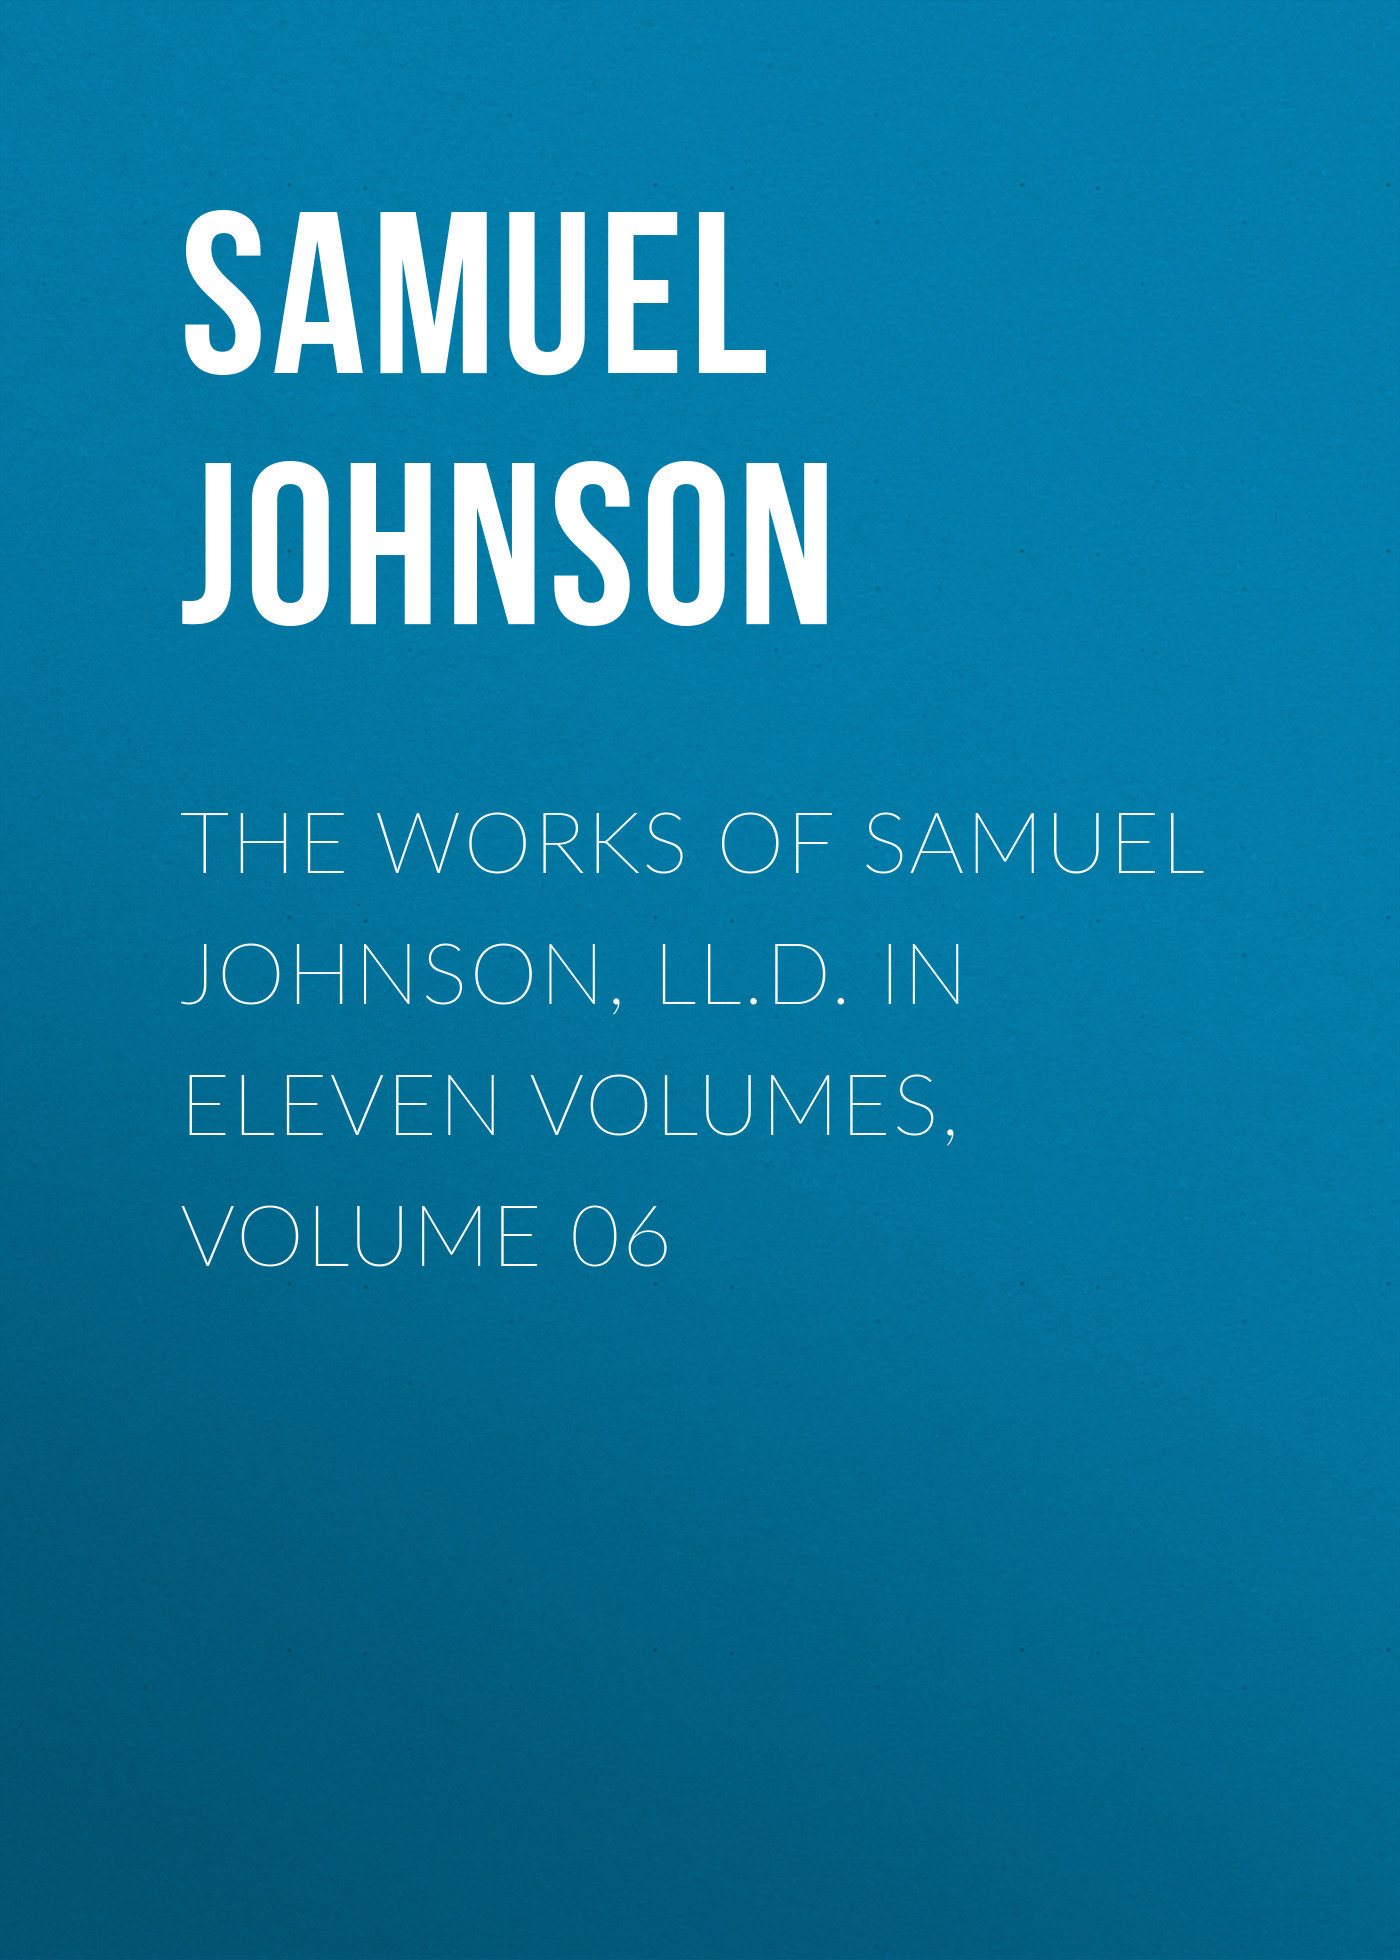 Samuel Johnson The Works of Samuel Johnson, LL.D. in Eleven Volumes, Volume 06 sir samuel samuel sir vize pli o